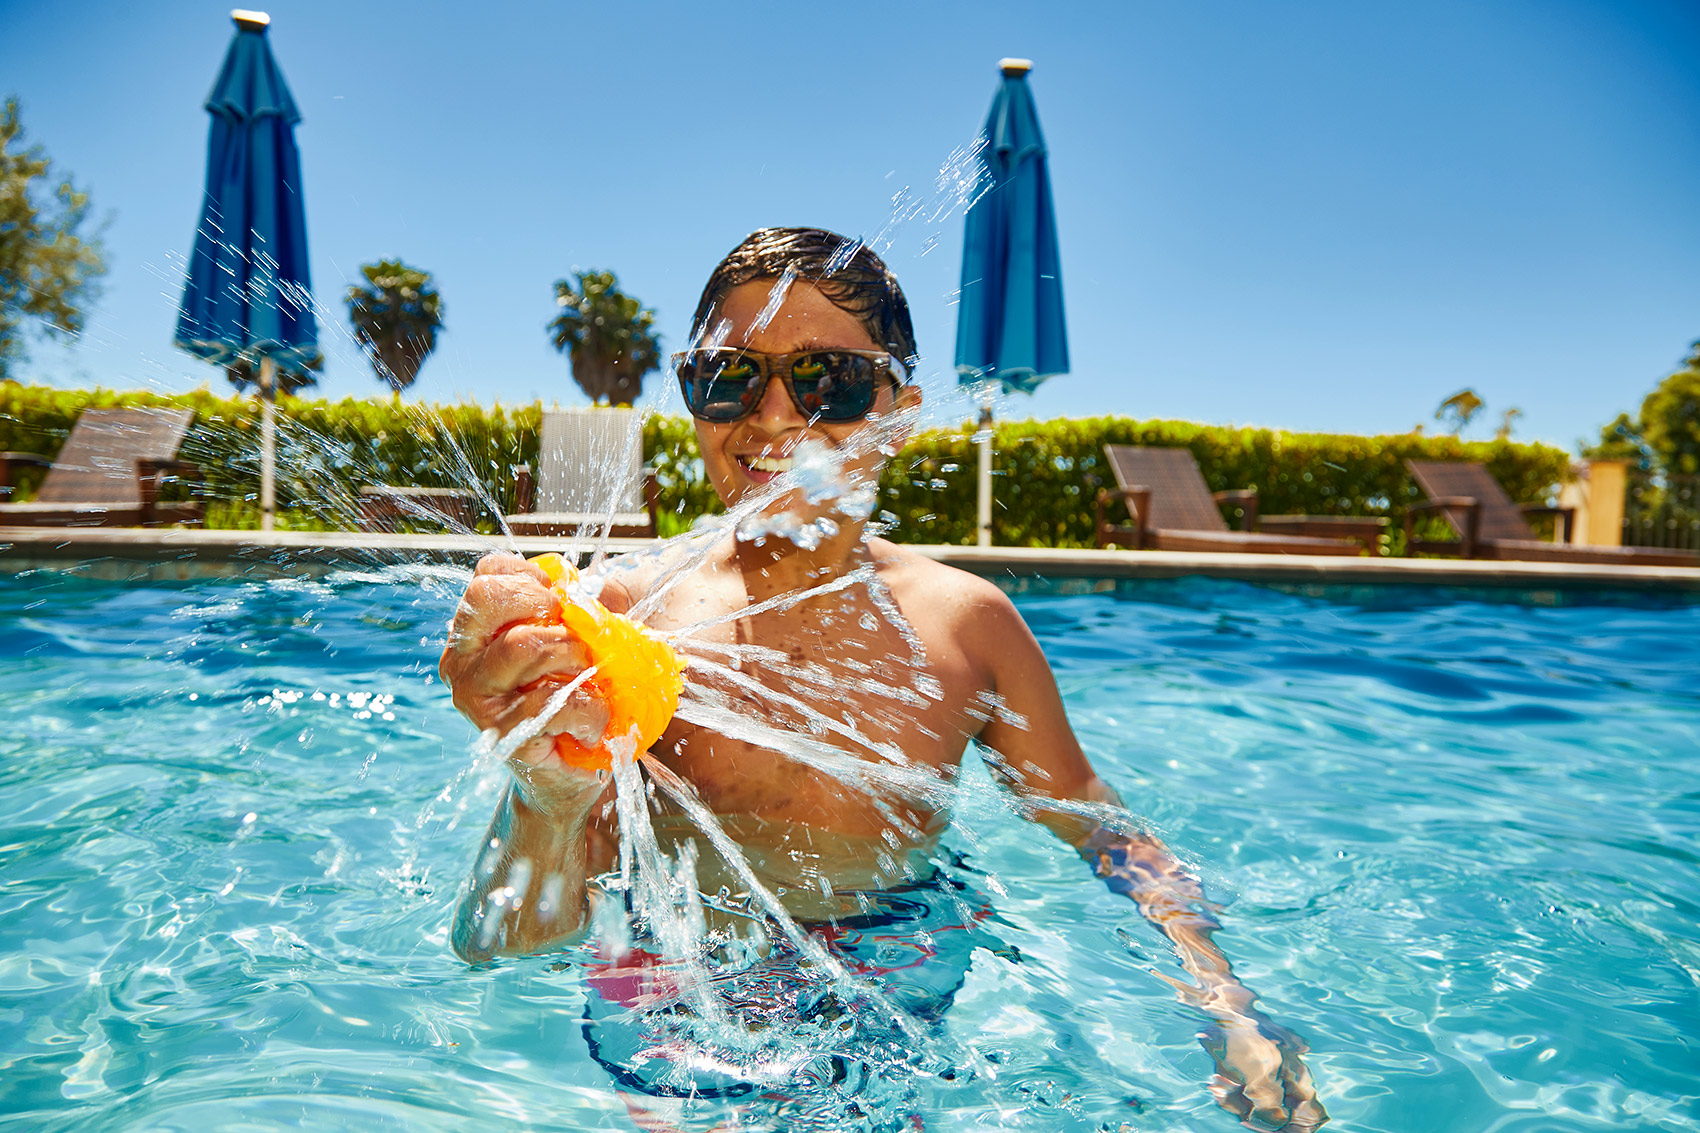 Lifestyle Photographer California | Wham-O Pool Day with Toys